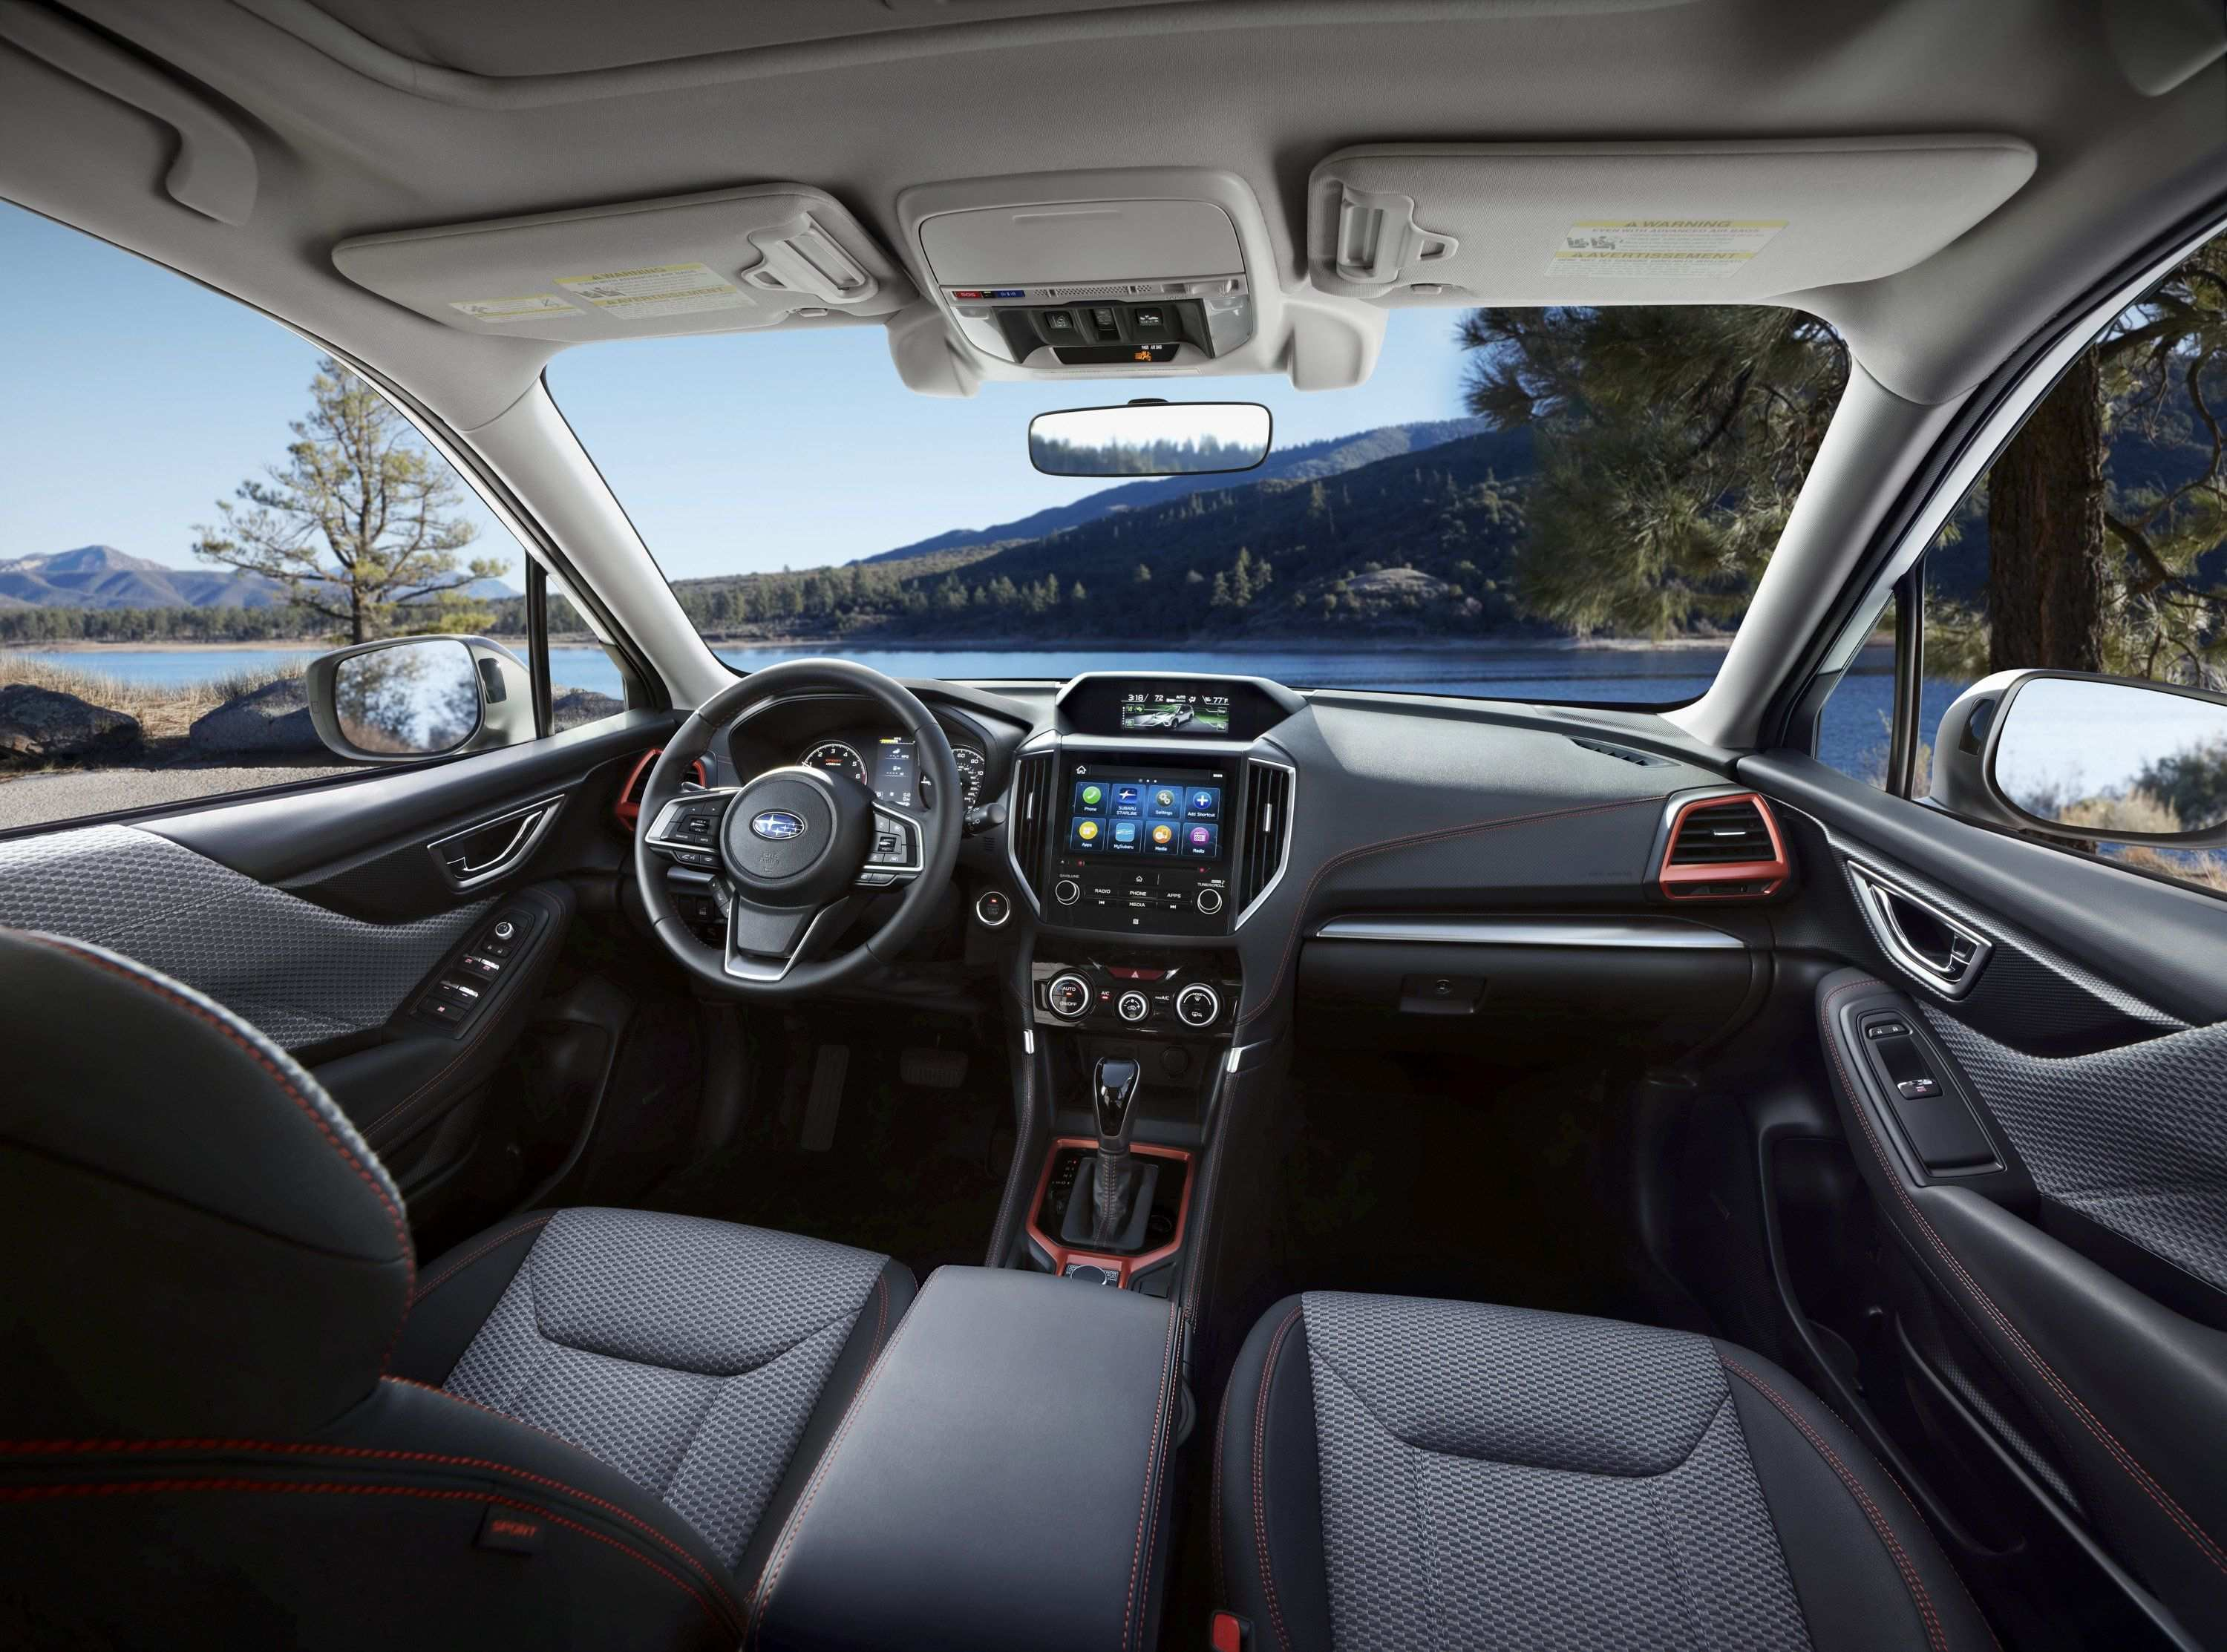 48 New 2019 Subaru Forester Manual Release Date And Concept